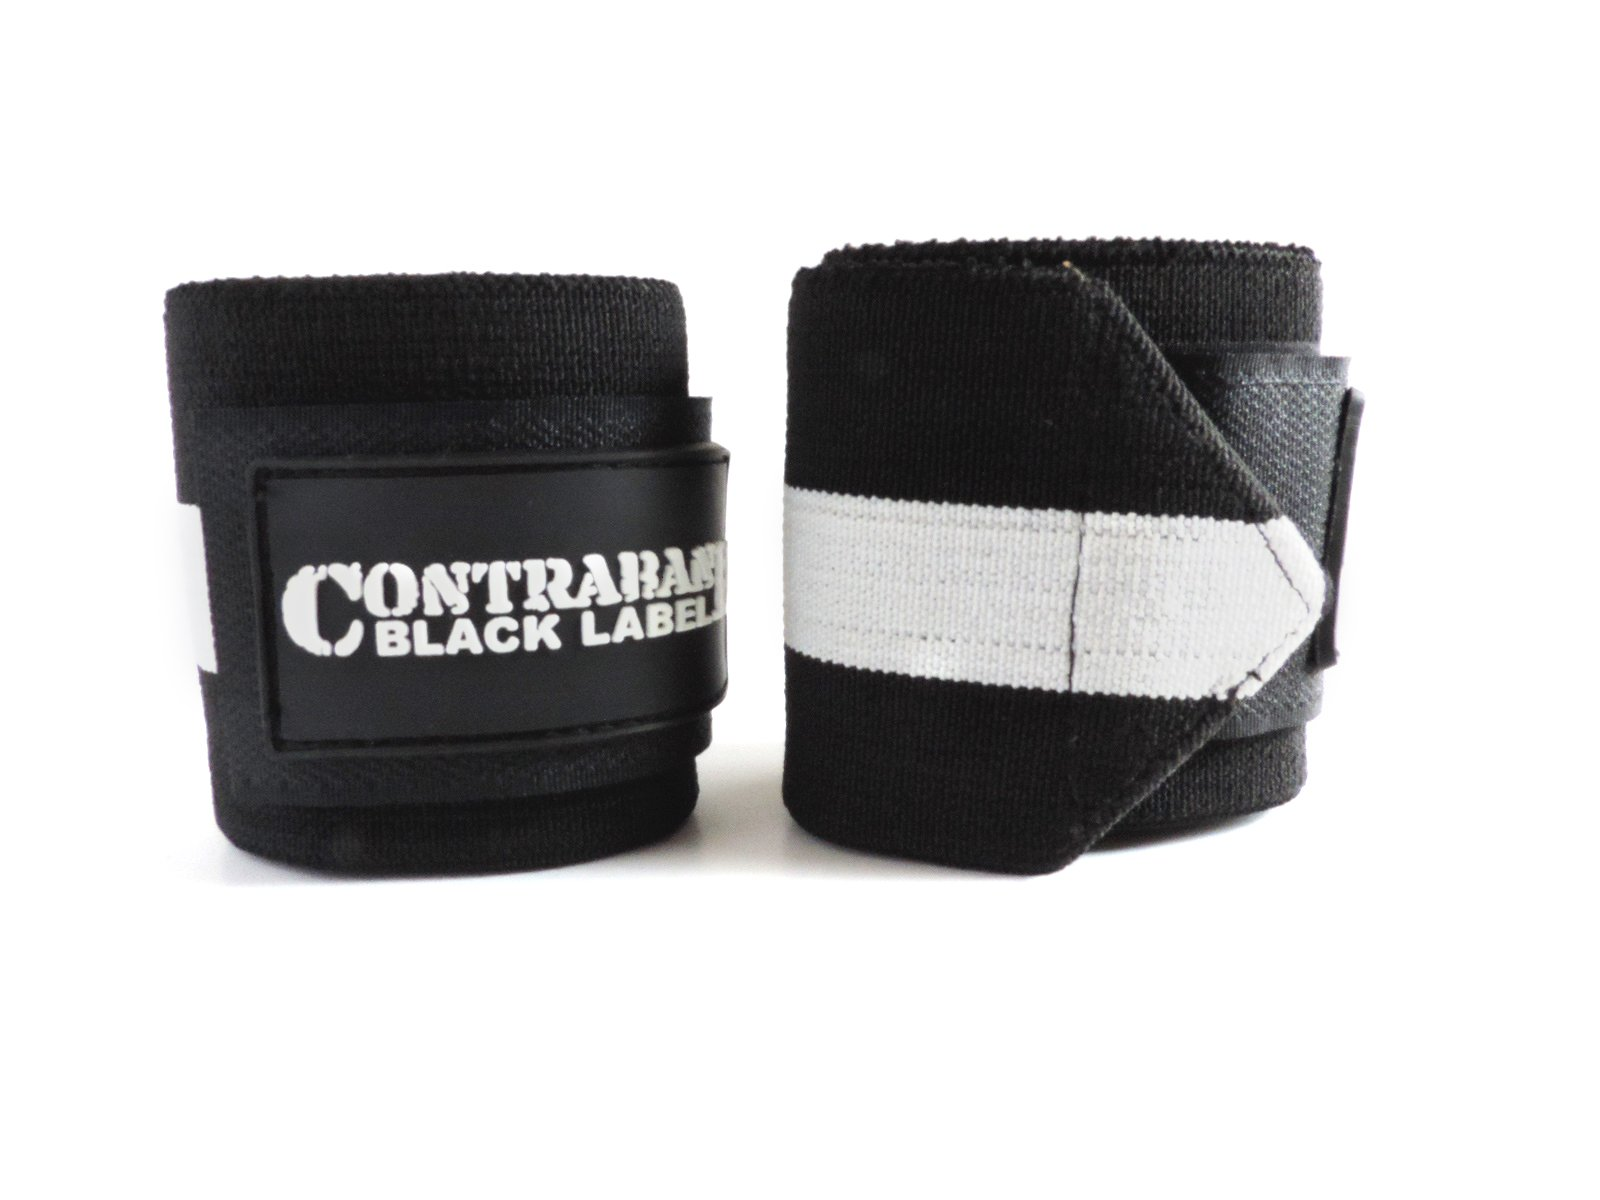 Contraband Black Label 1001 Weight Lifting Wrist Wraps w/Thumb Loops (Pair) - Competition Grade Wrist Support USPA Approved for Powerlifting, Bodybuilding, Strongman (18in, Extreme (White))